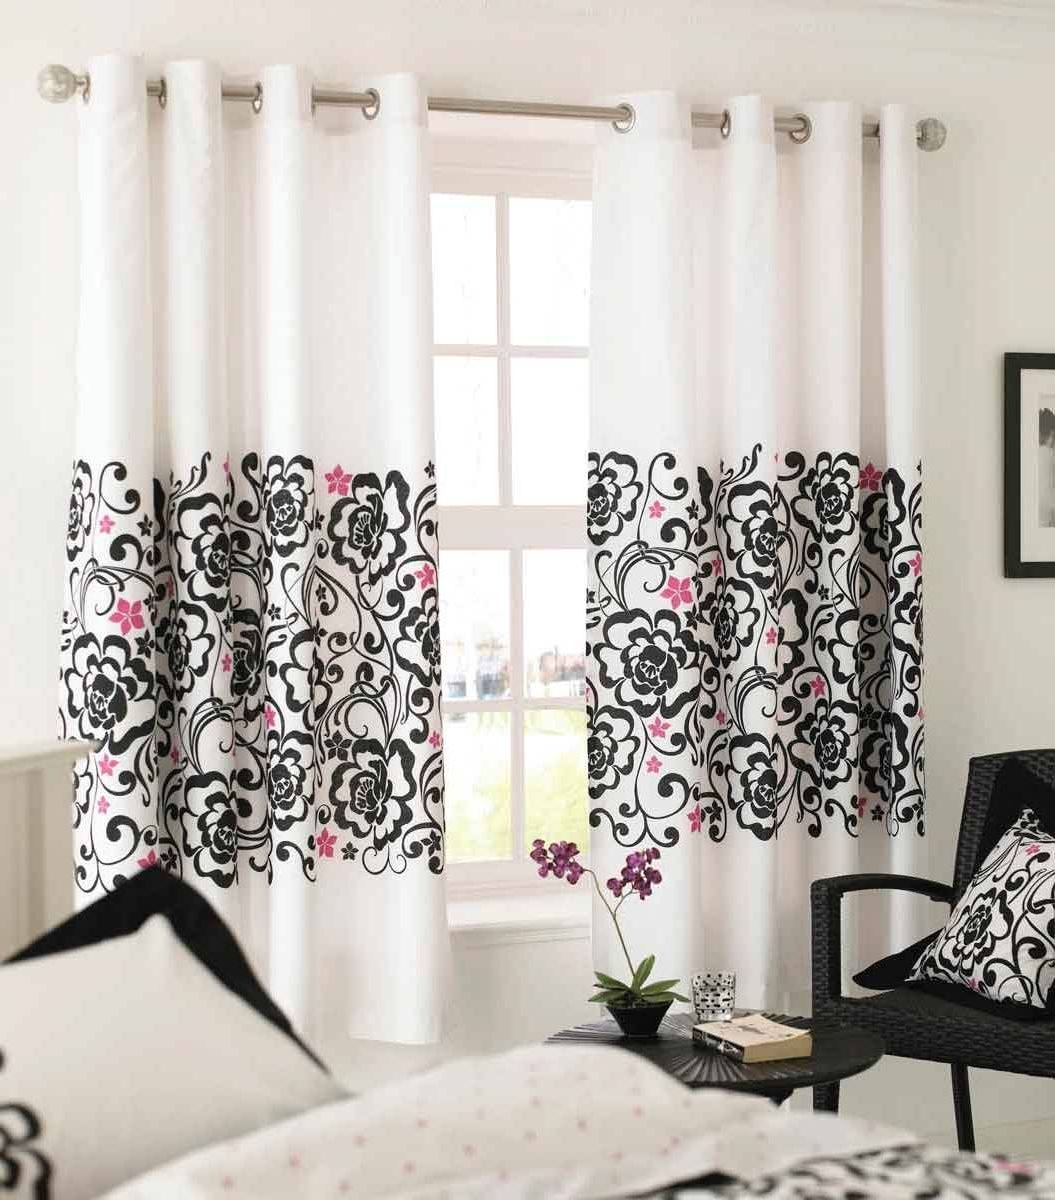 Black and white curtains bedroom - Window Treatment In Bedroom Ideas With White Patterned Curtains Together With Black Armchair And Round Coffee